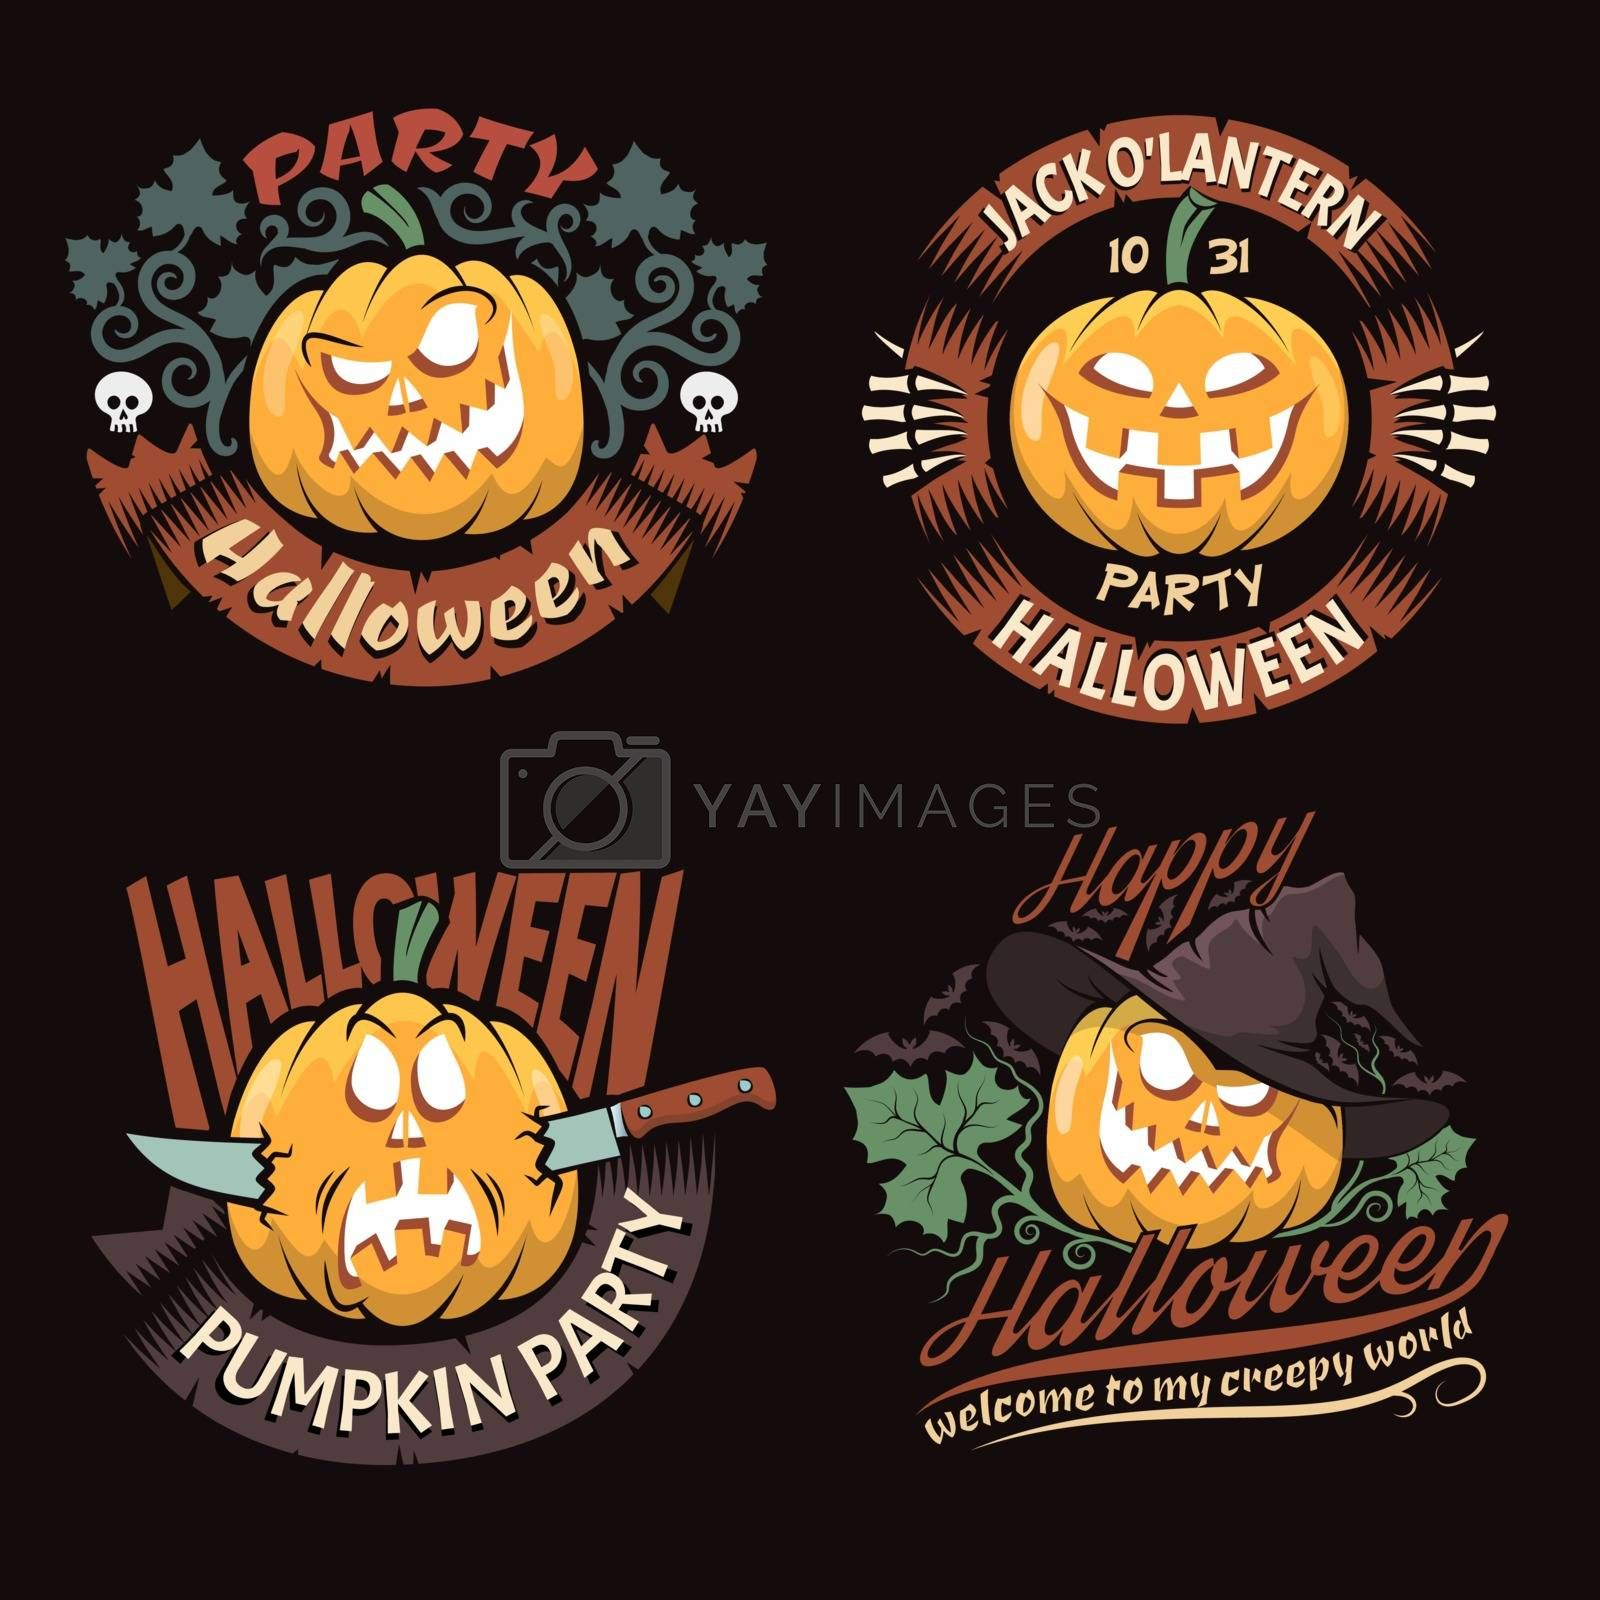 4 Halloween logo with pumpkins on a dark background in retro style.